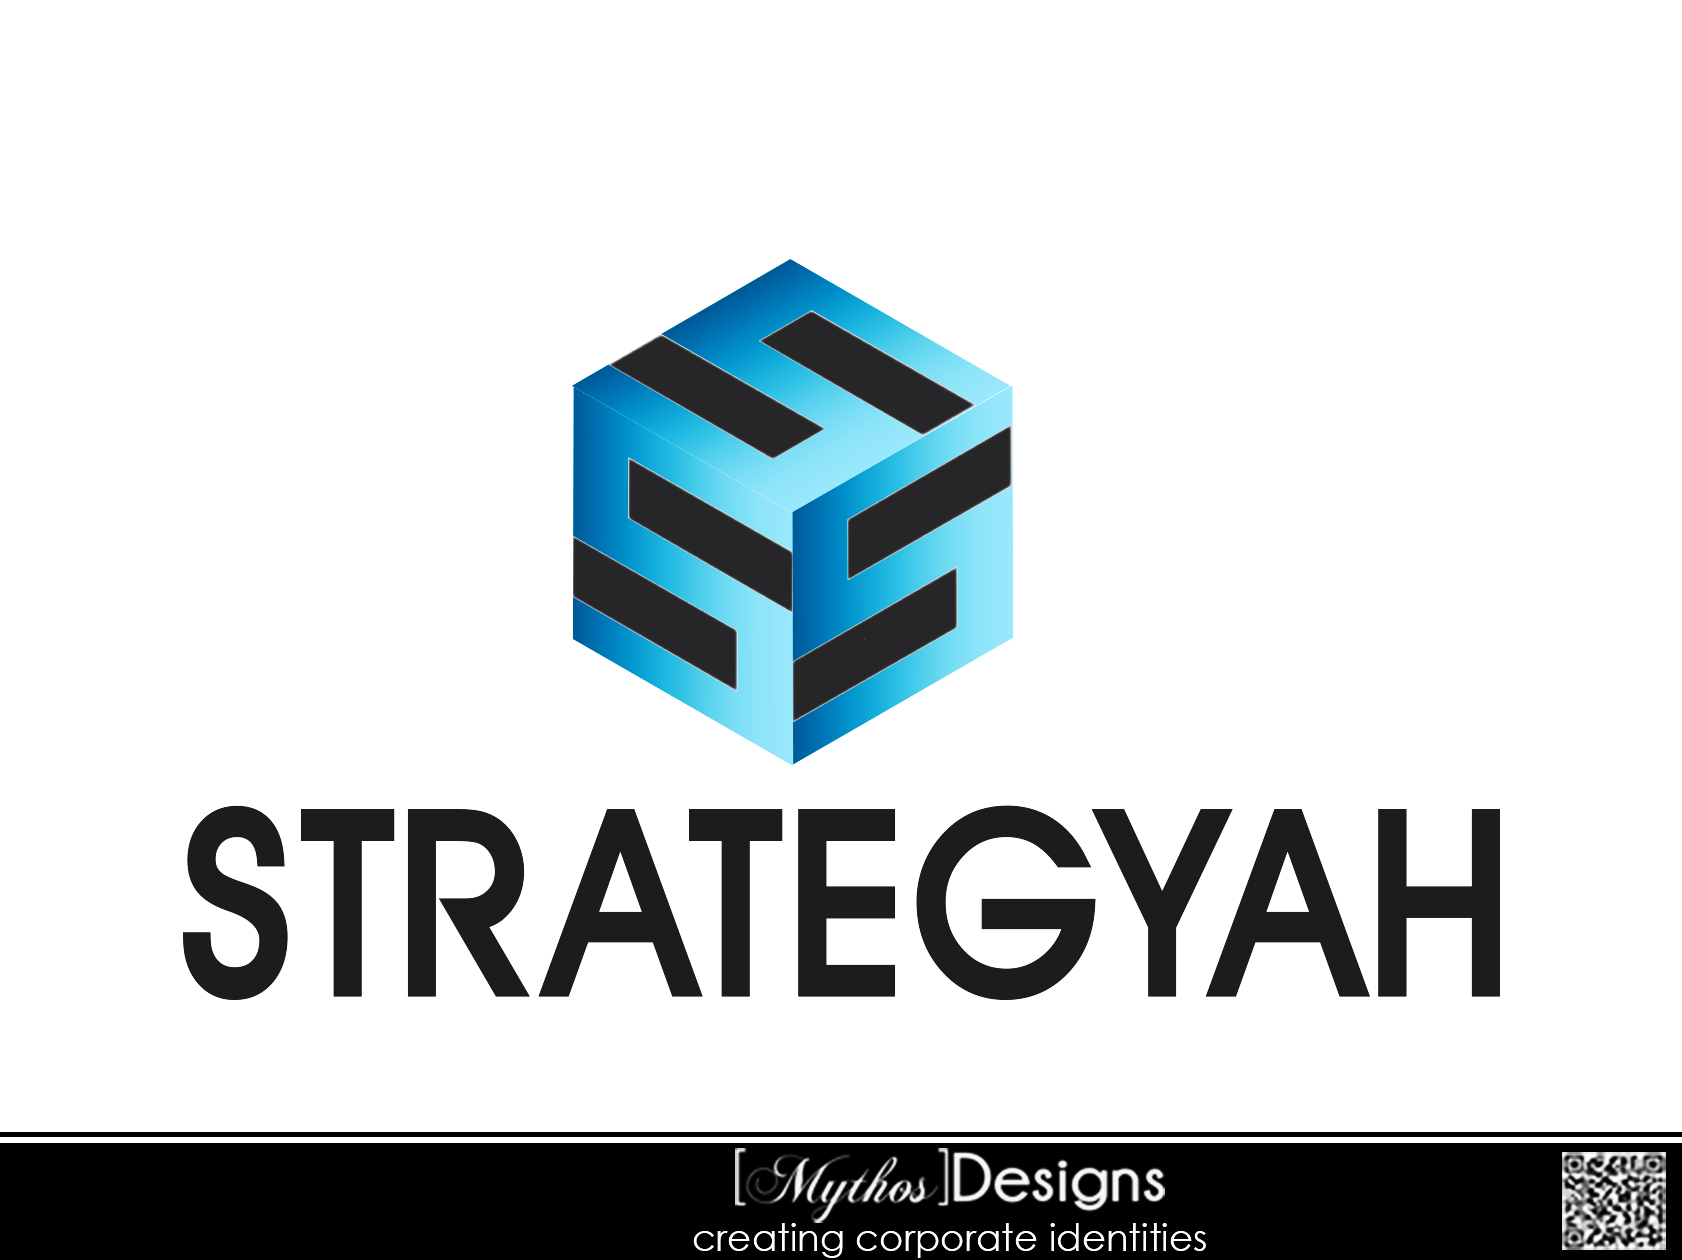 Logo Design by Mythos Designs - Entry No. 248 in the Logo Design Contest Creative Logo Design for Strategyah.